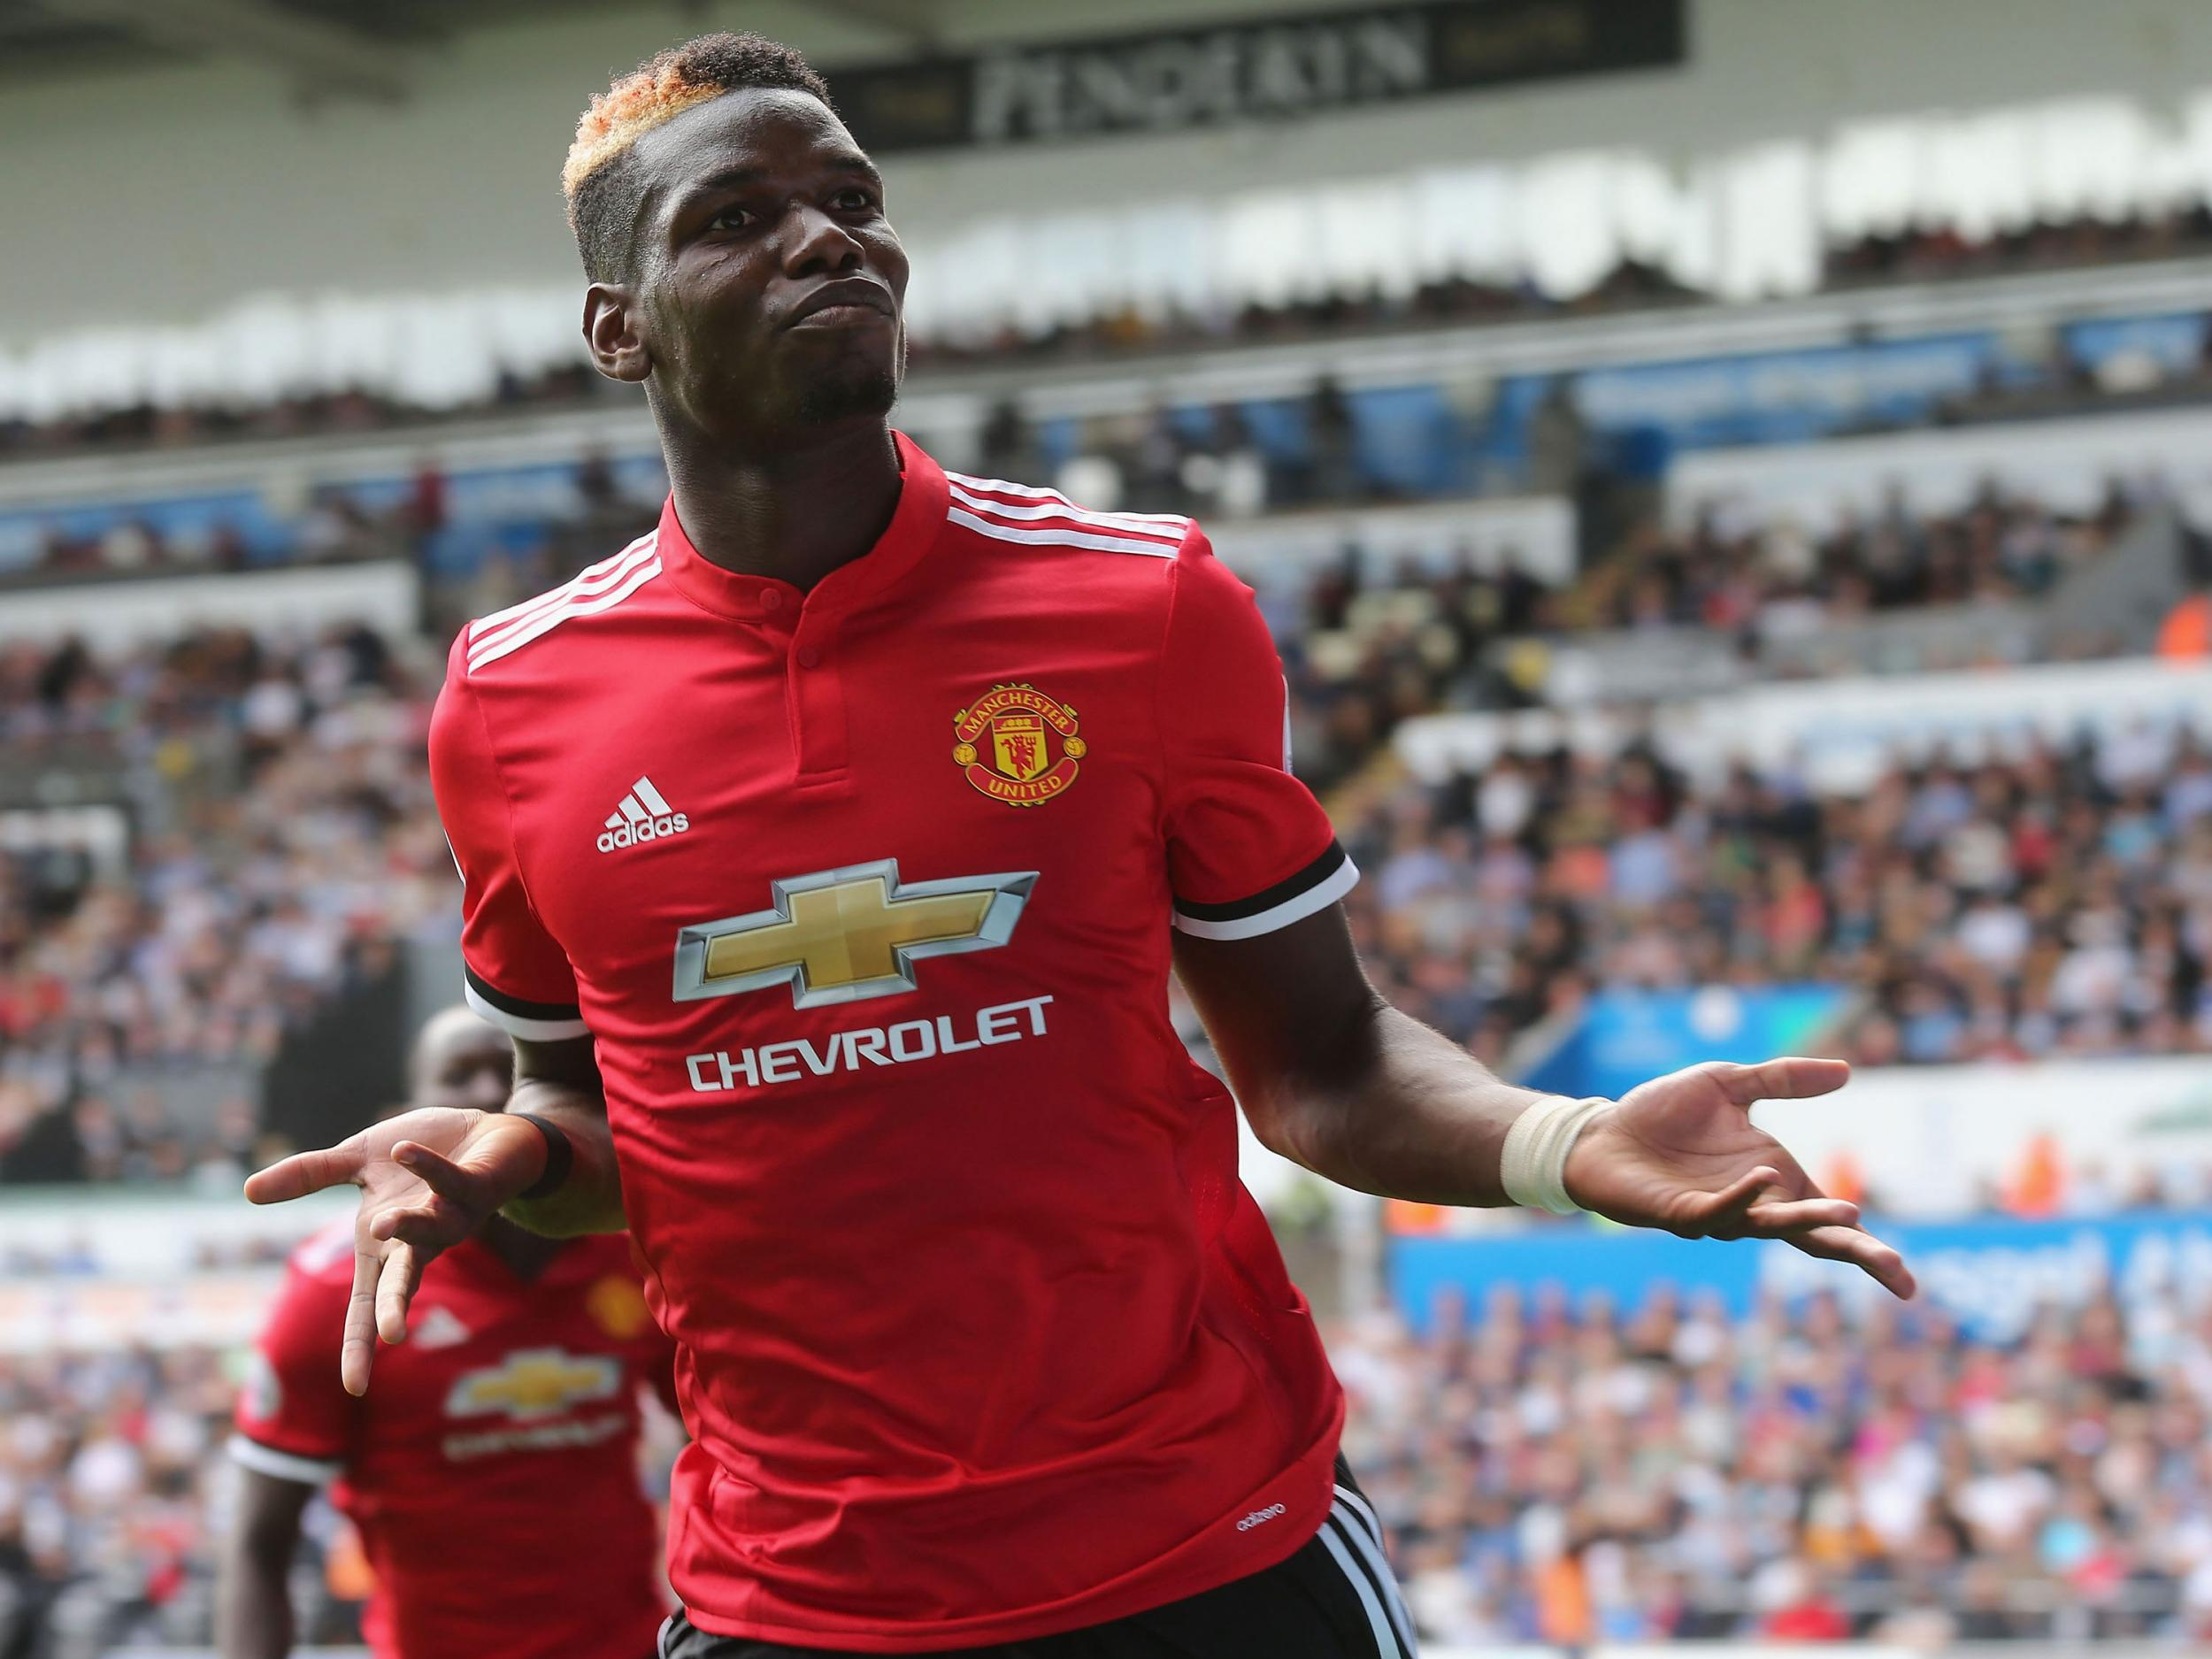 Paul Pogba set to start for Manchester United against Newcastle on comeback from injury